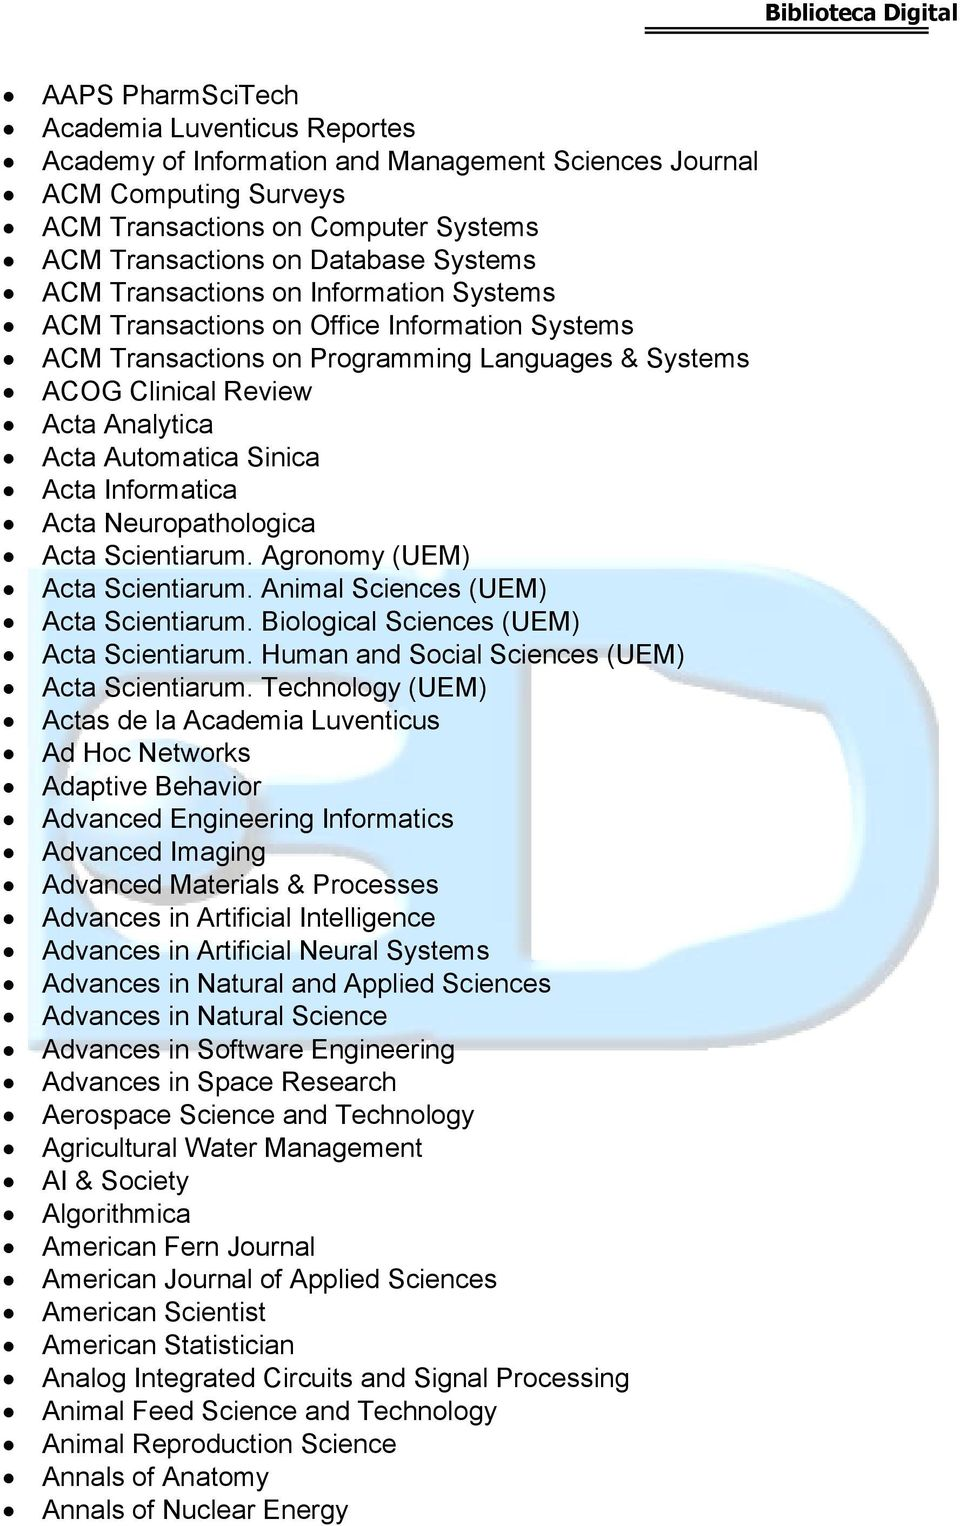 Acta Informatica Acta Neuropathologica Acta Scientiarum. Agronomy (UEM) Acta Scientiarum. Animal Sciences (UEM) Acta Scientiarum. Biological Sciences (UEM) Acta Scientiarum.